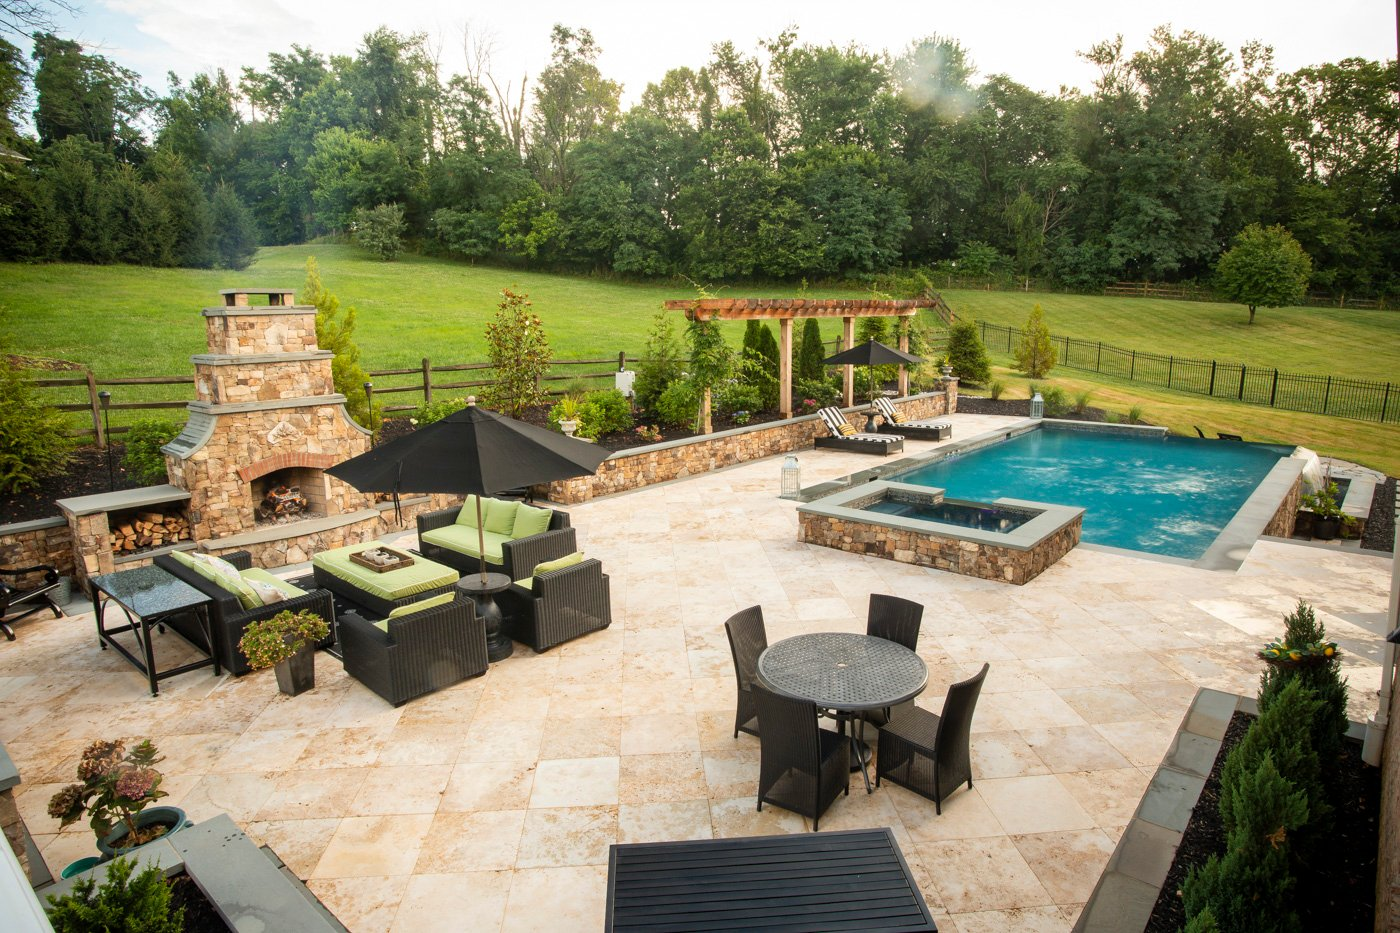 luxury patio with outdoor fireplace, spa, and pool